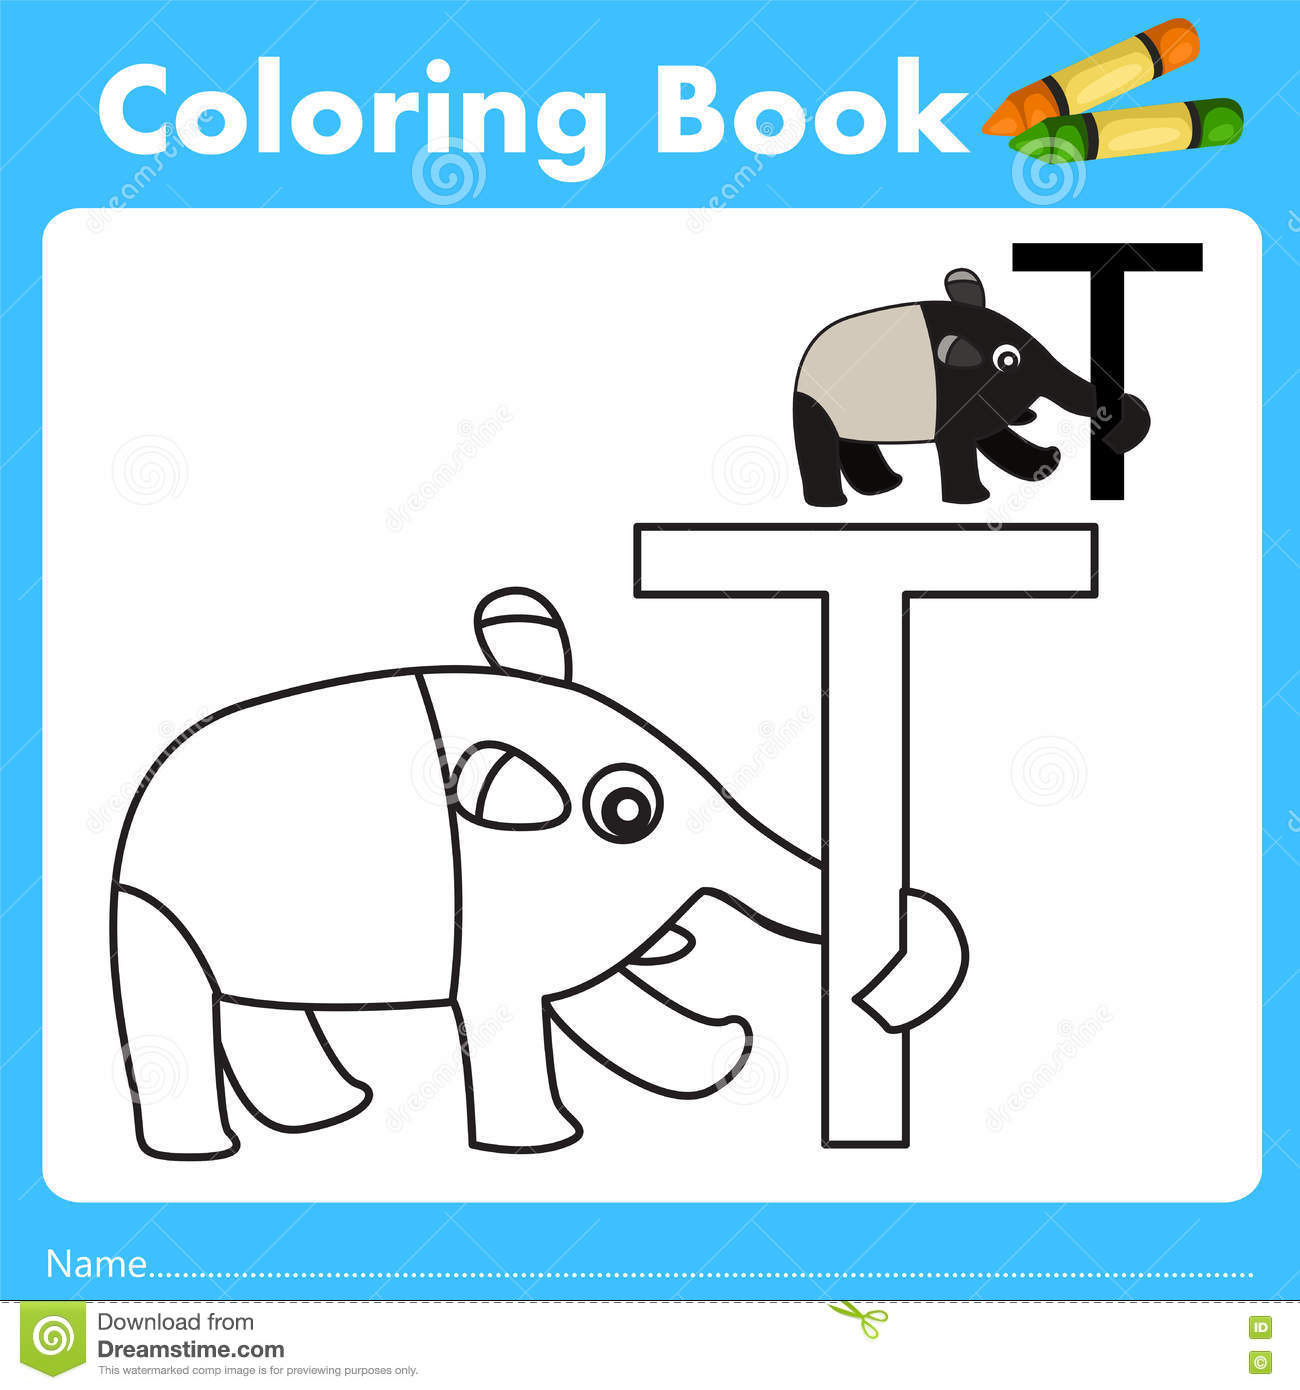 Book color illustrator - Illustrator Of Color Book With Tapir Animal Stock Vector